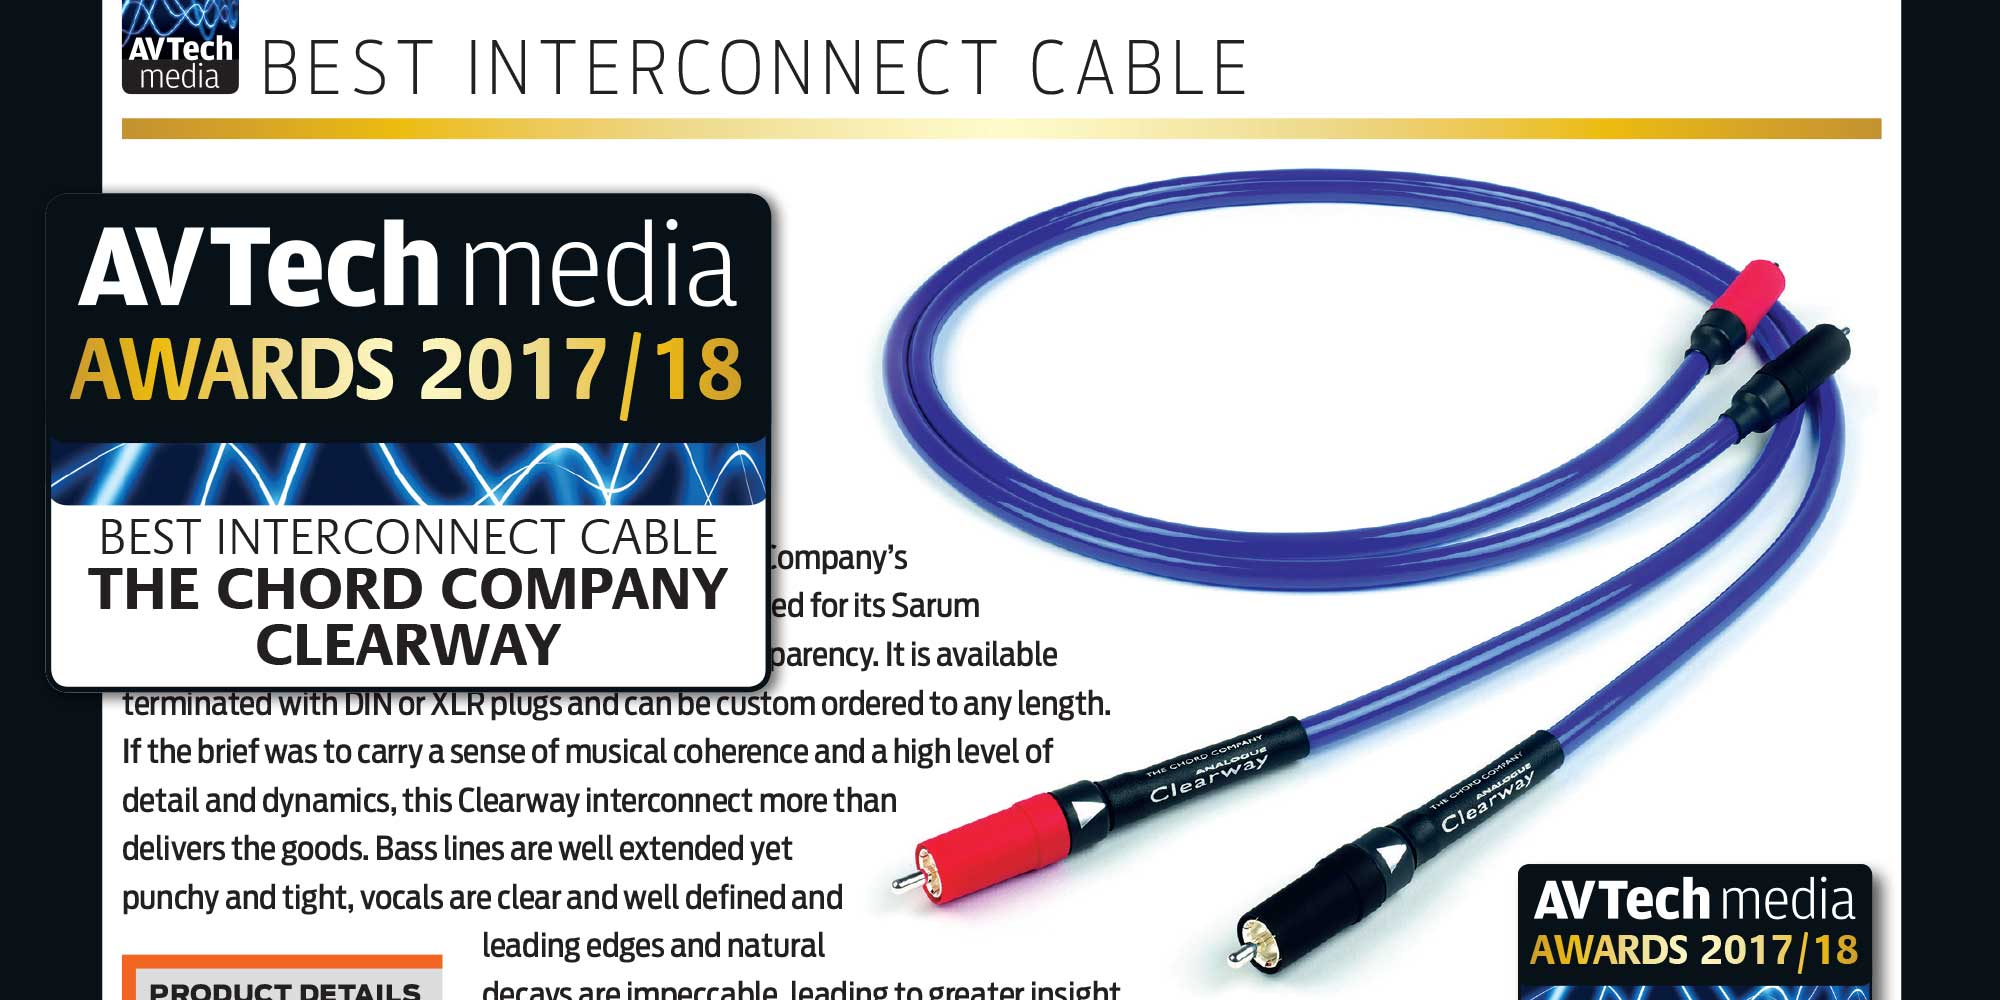 AV Tech Media Awards 2017/18 – Best Interconnect Cable: Chord Clearway